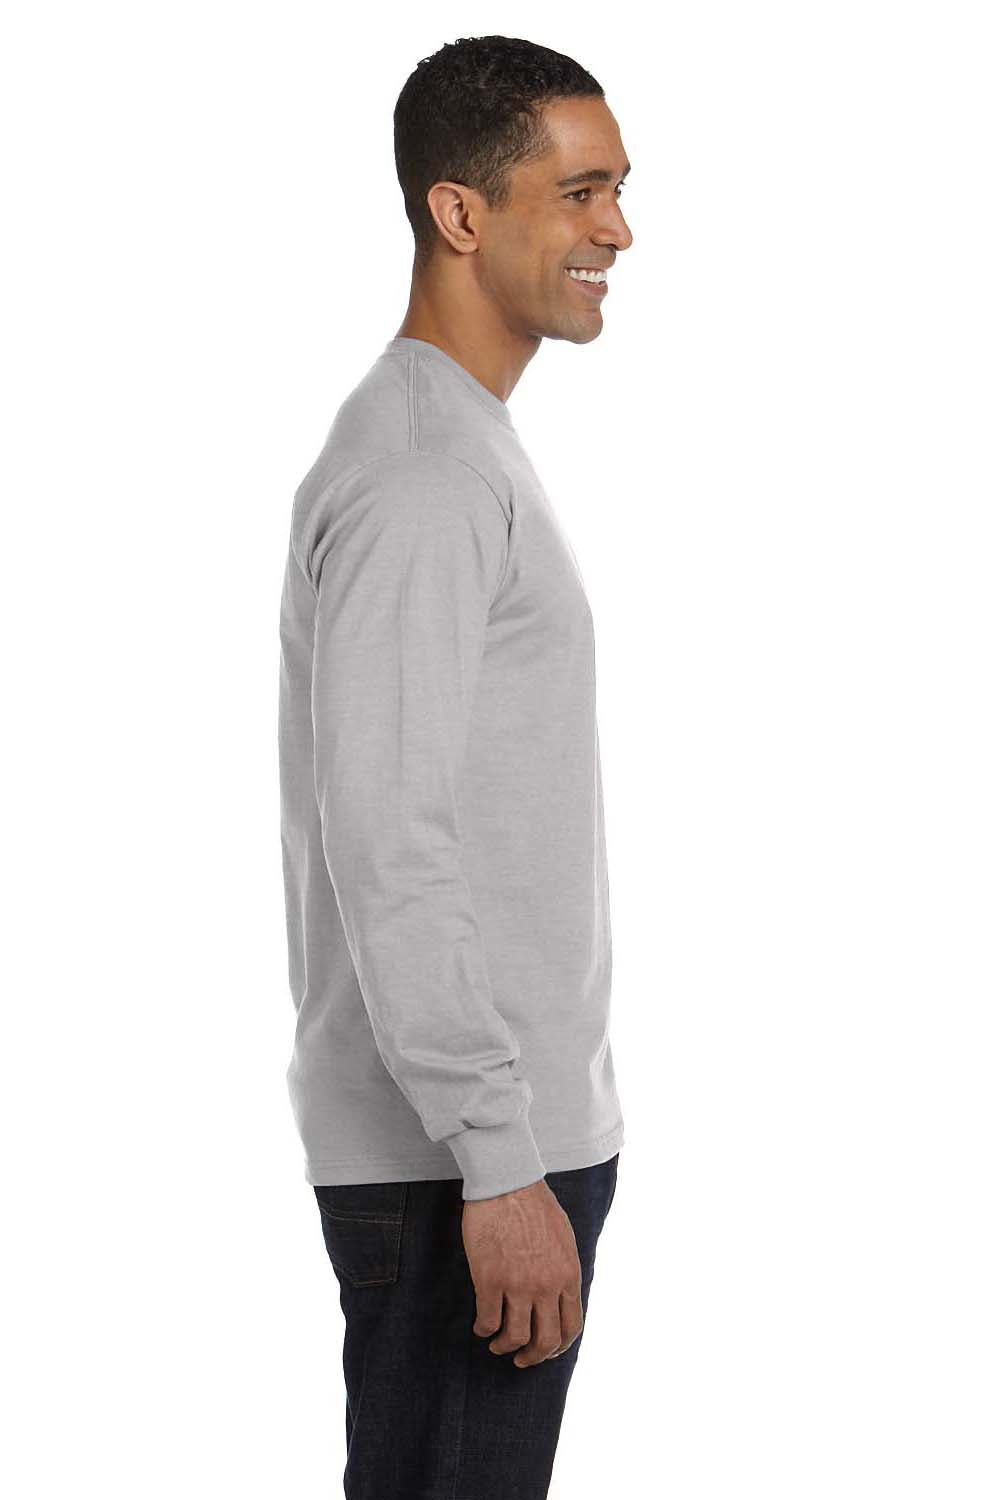 Hanes 5286 Mens ComfortSoft Long Sleeve Crewneck T-Shirt Light Steel Grey Side